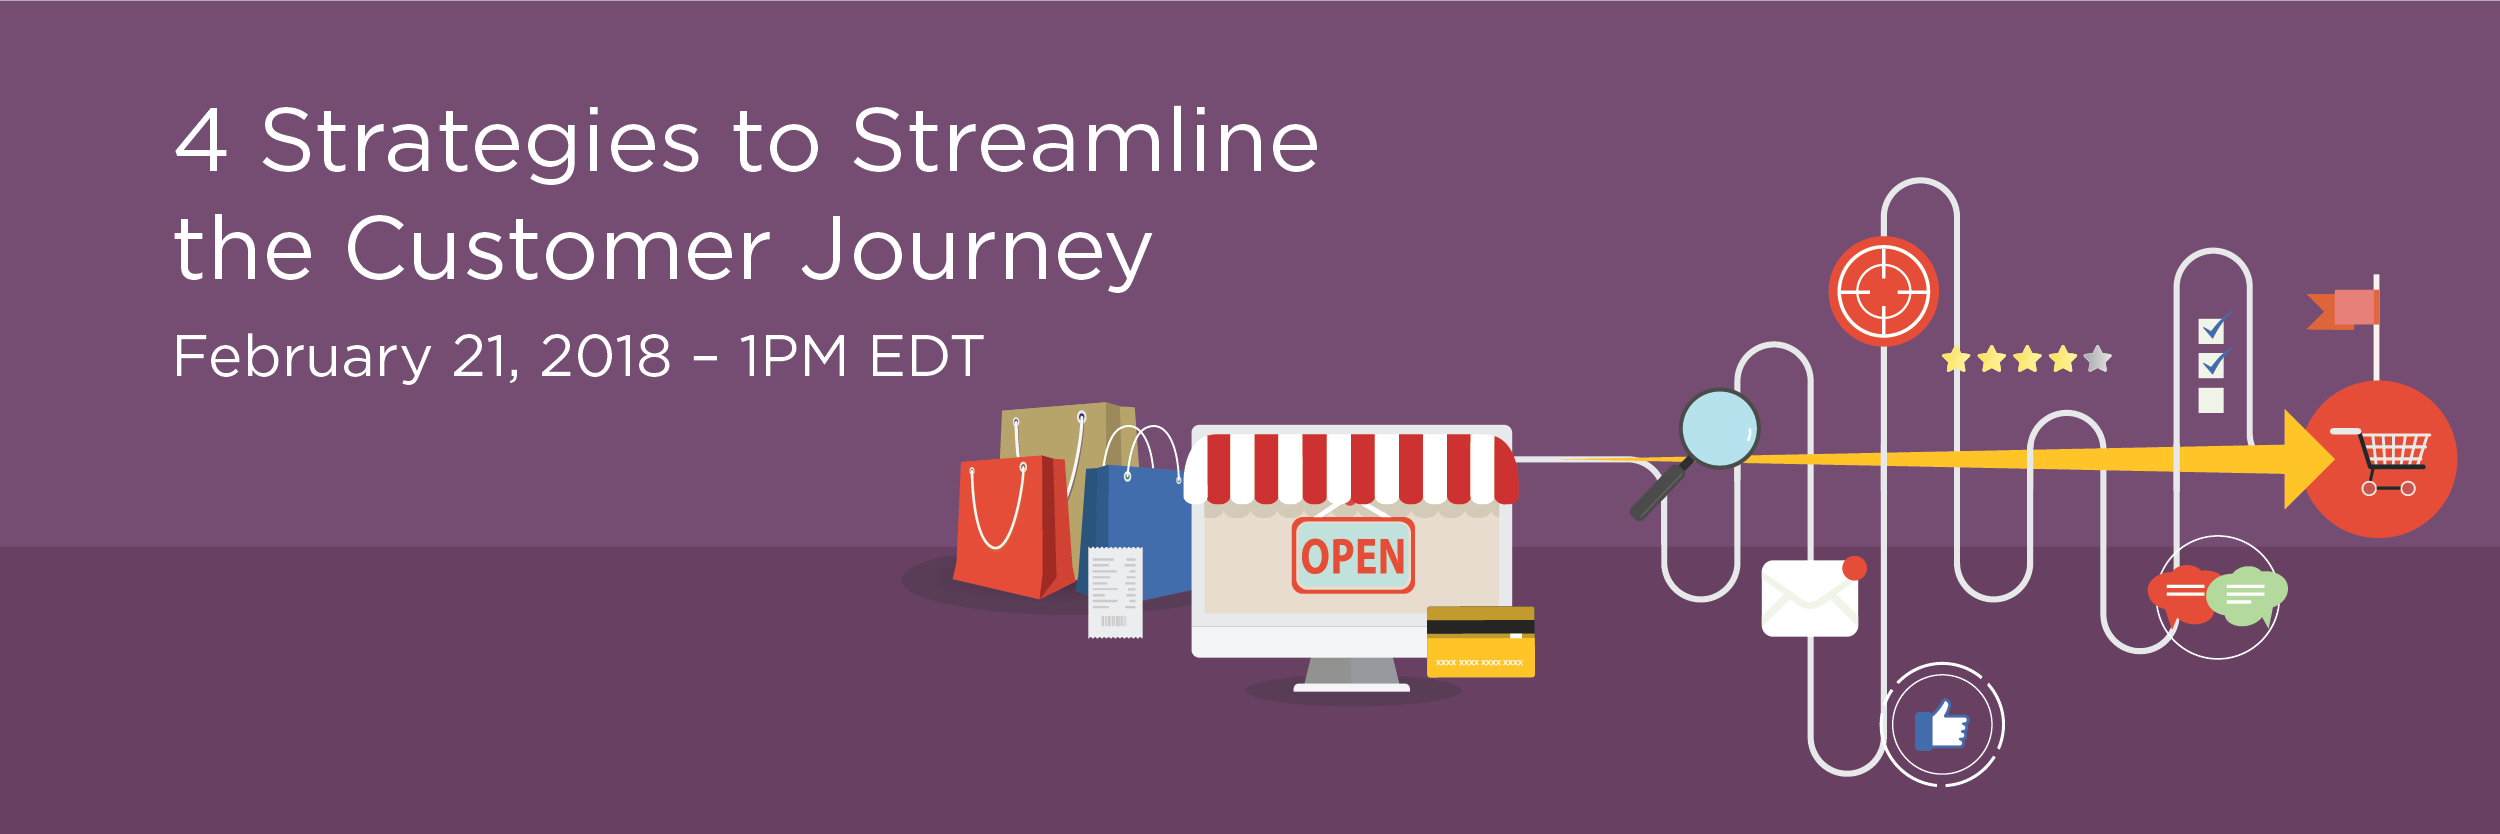 StreamlineCustomerJourney_WebinarPgImg_NoRegisterNow_R1-01-Final